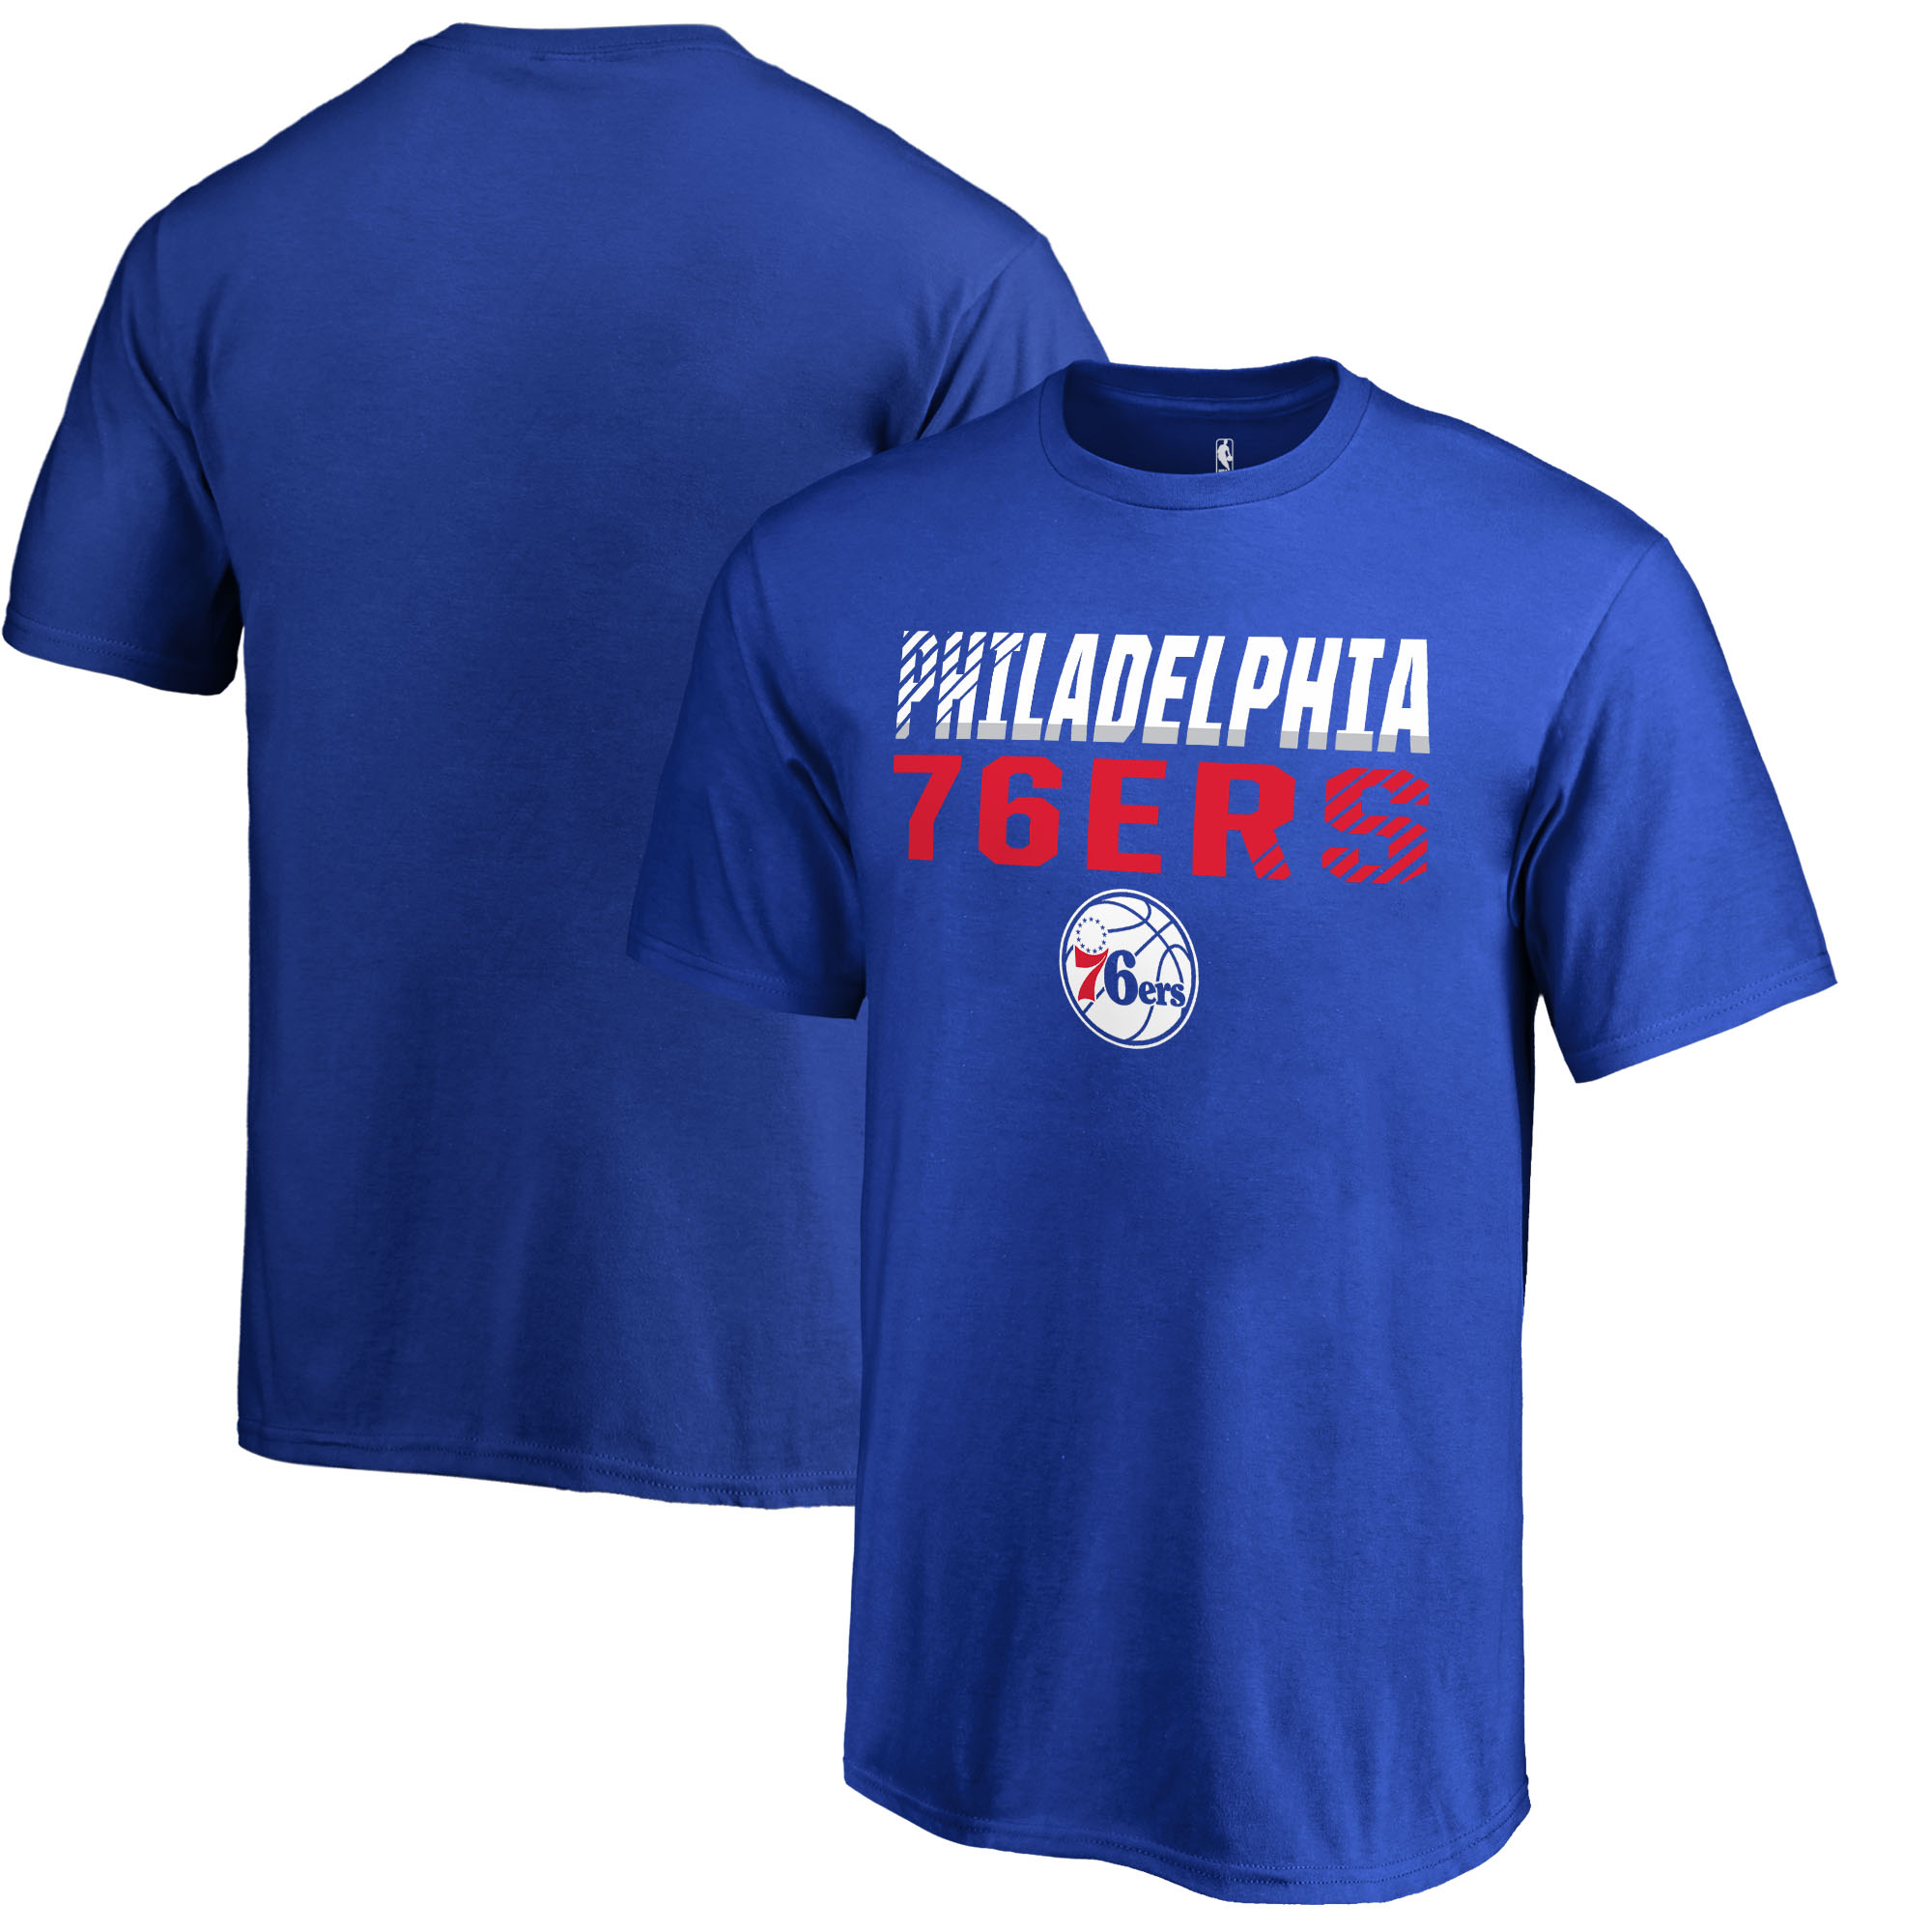 Philadelphia 76ers Fanatics Branded Youth Fade Out T-Shirt - Royal